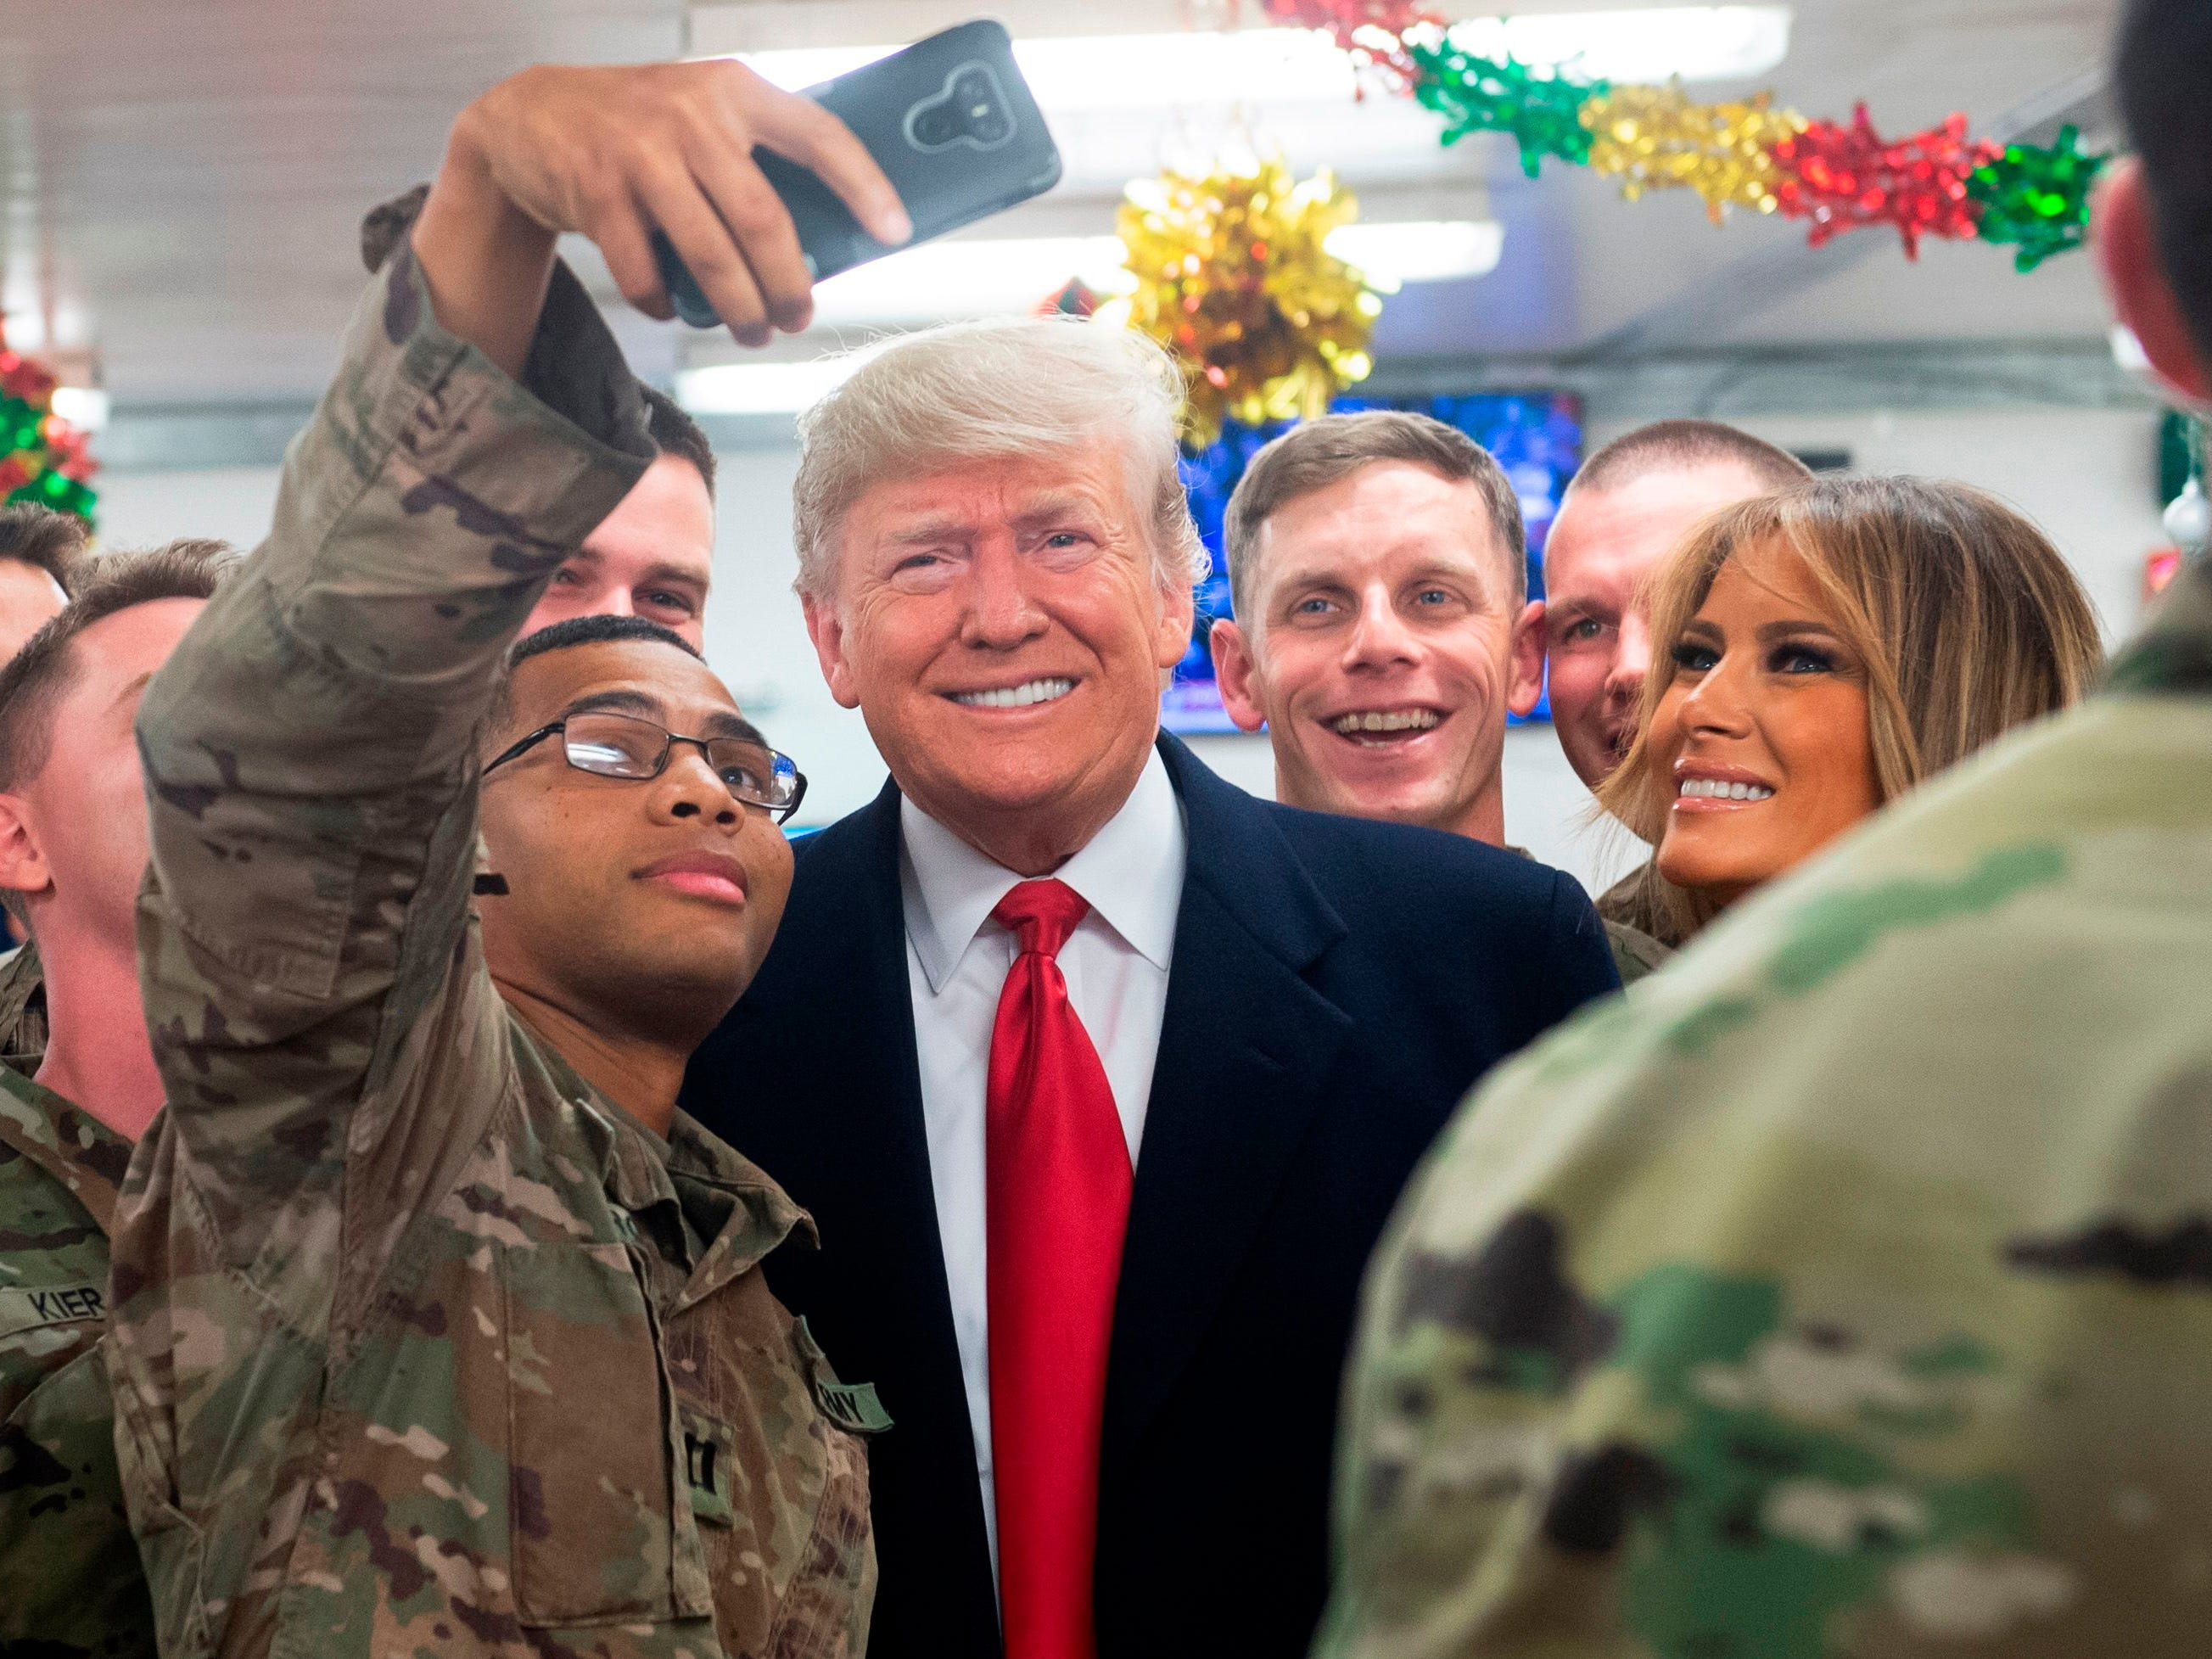 US President Donald Trump and First Lady Melania Trump greet members of the US military during an unannounced trip to Al Asad Air Base in Iraq on December 26, 2018. (Photo by SAUL LOEB / AFP)SAUL LOEB/AFP/Getty Images ORIG FILE ID: AFP_1BU3JB